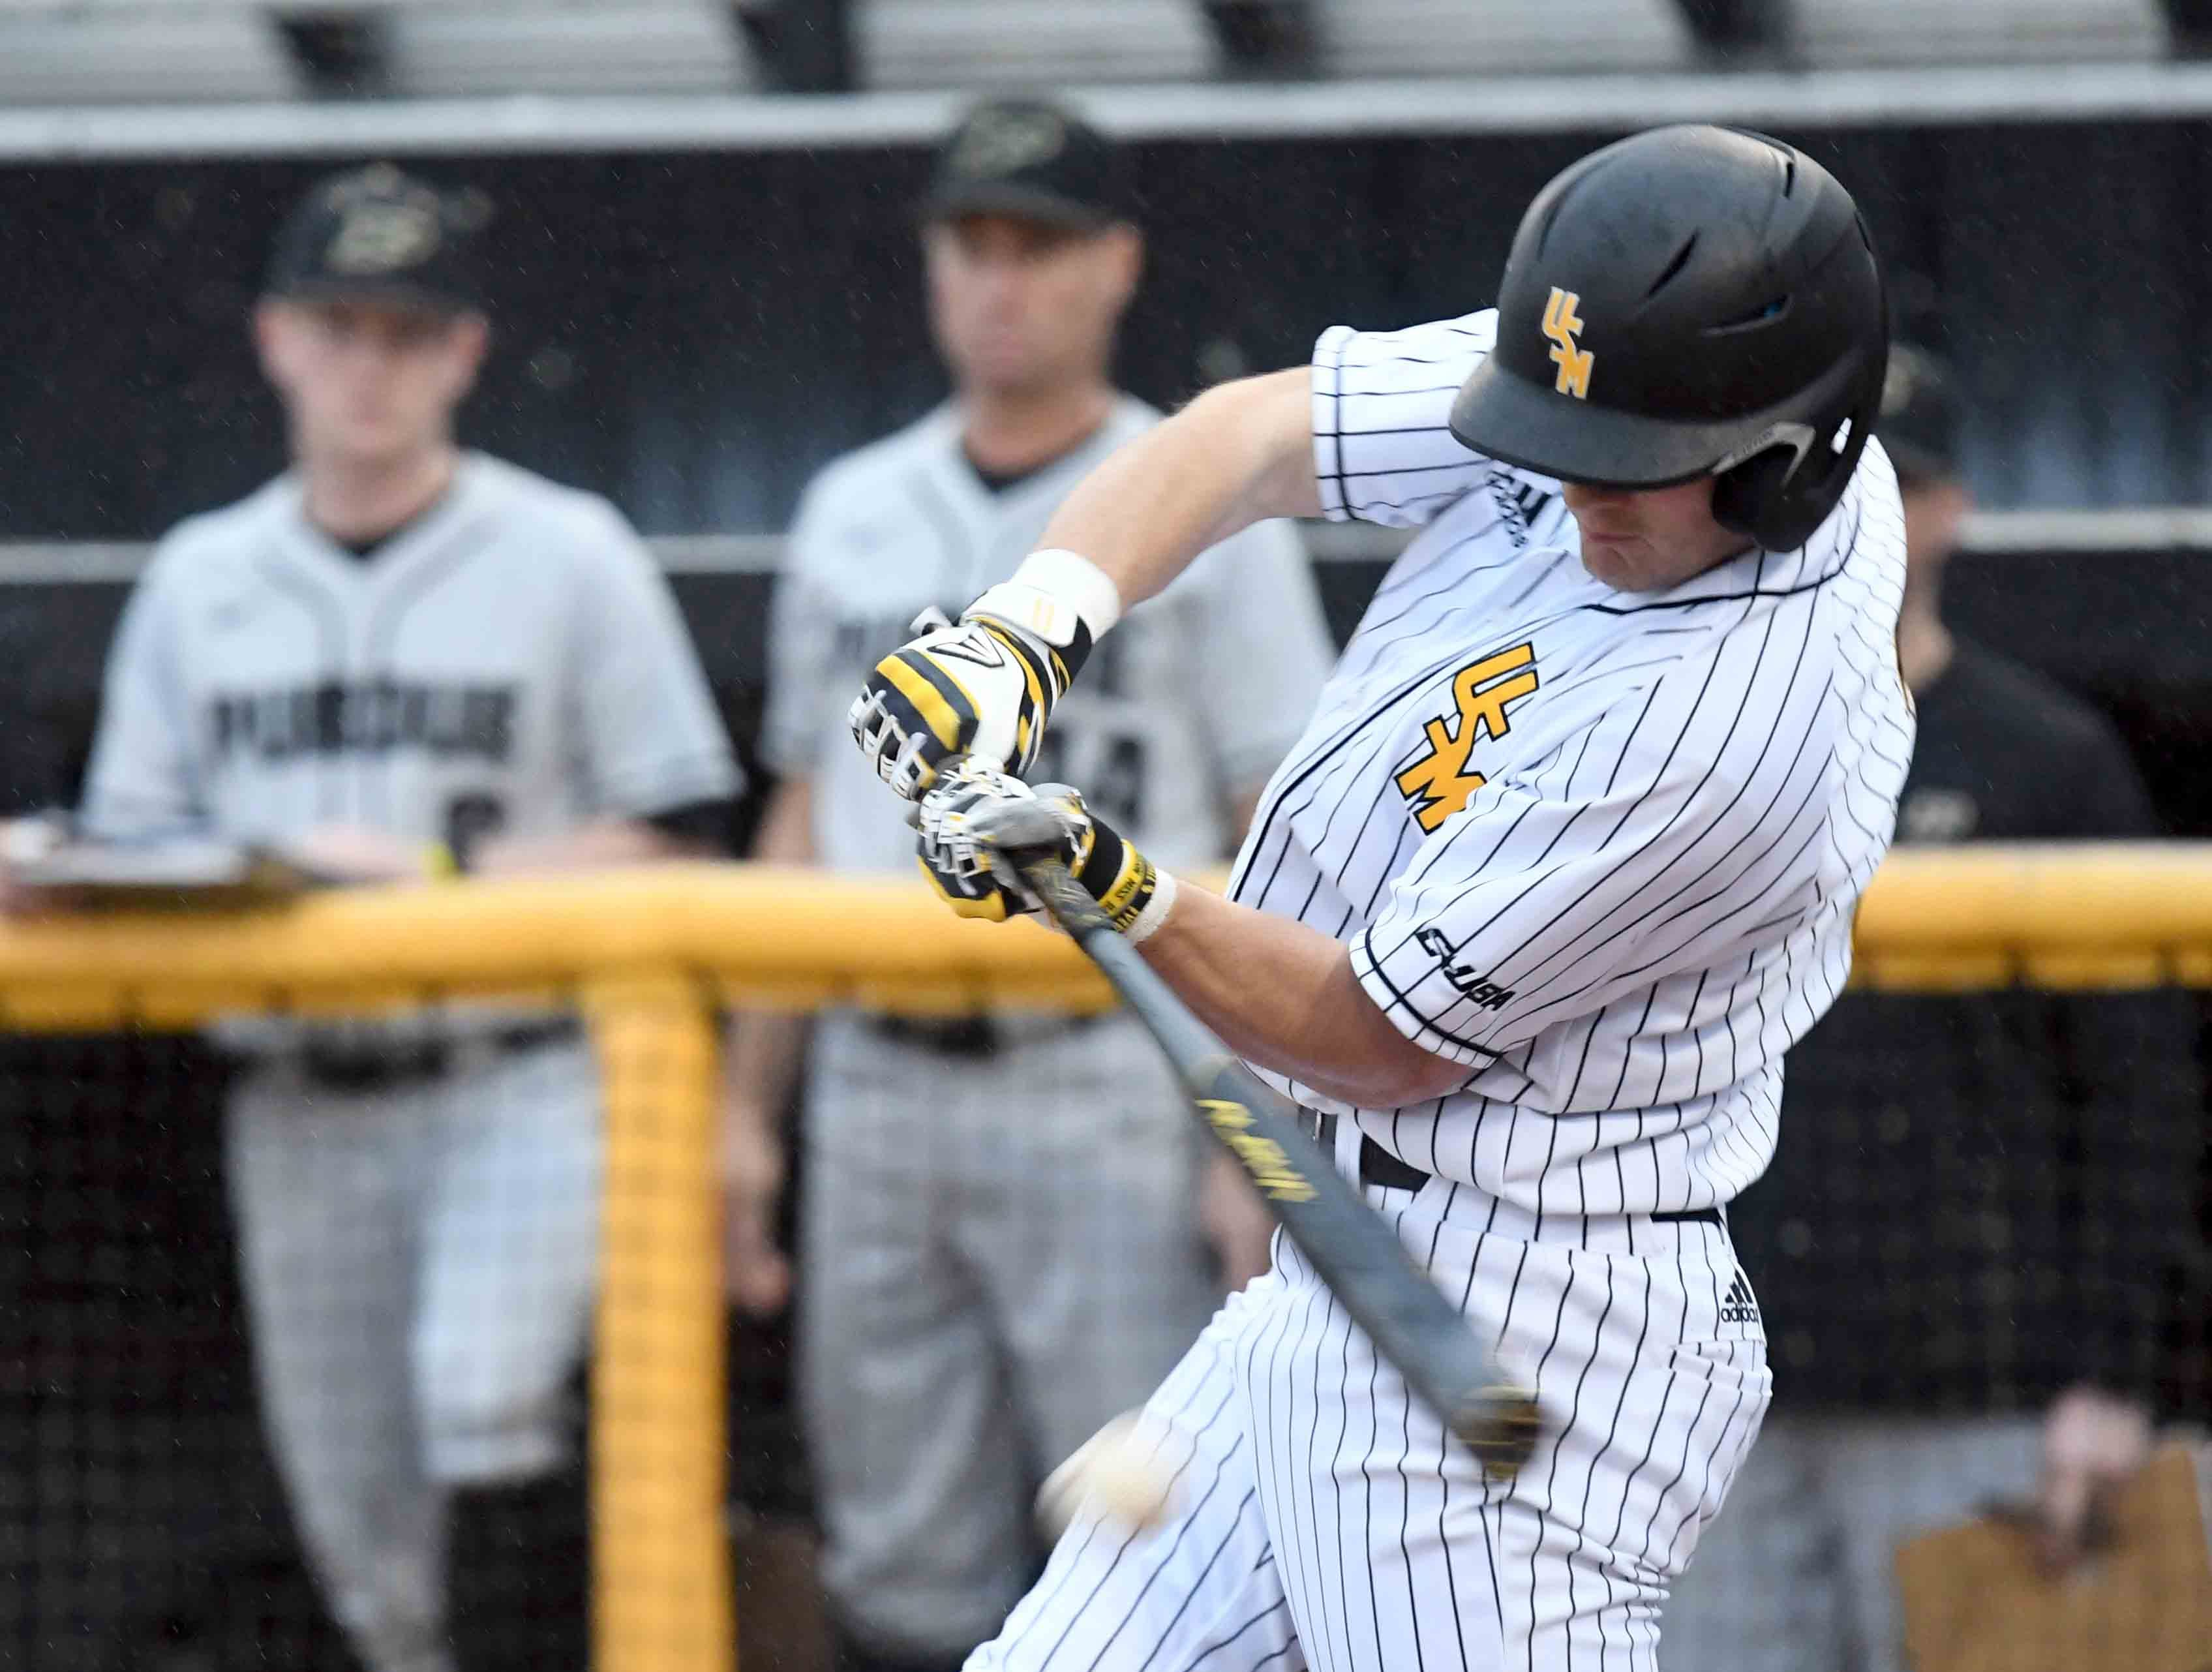 Southern Miss' Hunter LeBlanc swings for the ball in the season opener against Purdue on Friday, February 15, 2019.